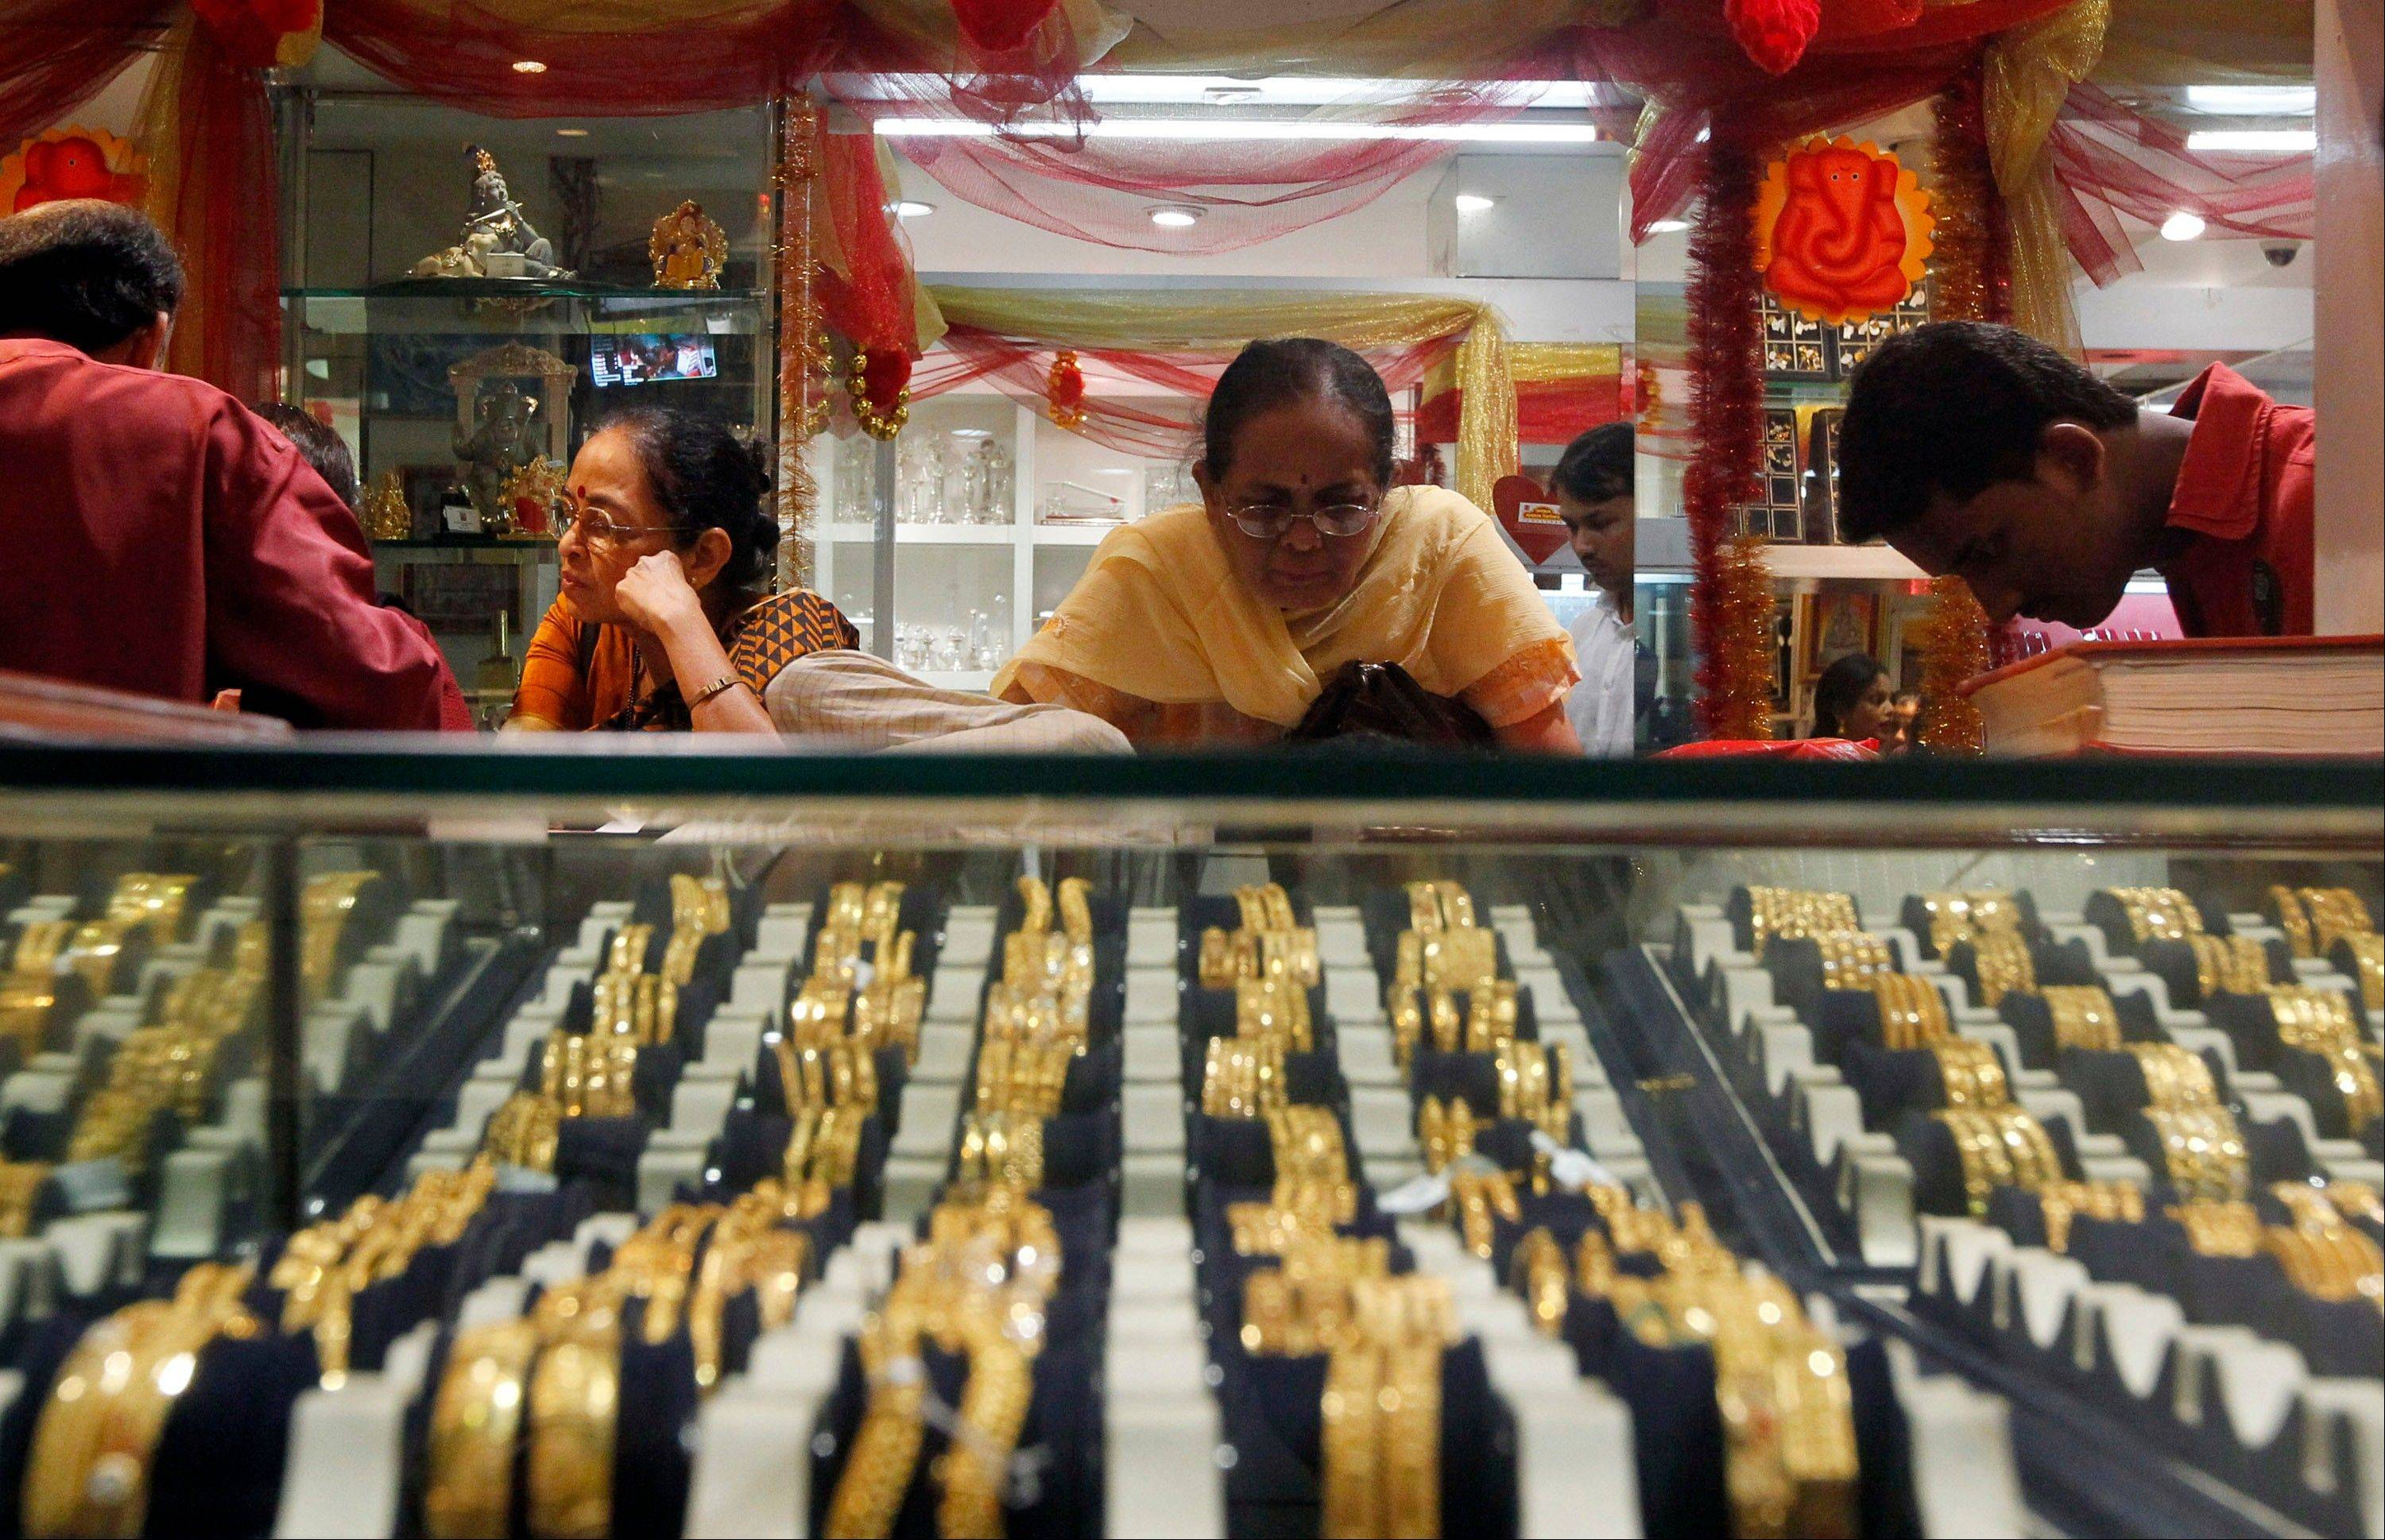 An Indian woman looks at a display of gold jewelry at a shop in Mumbai, India. Nowadays, India is by far the world's biggest buyer of gold, which despite its rising value, is an increasing drain on an economy that is growing too slowly to reduce widespread poverty.